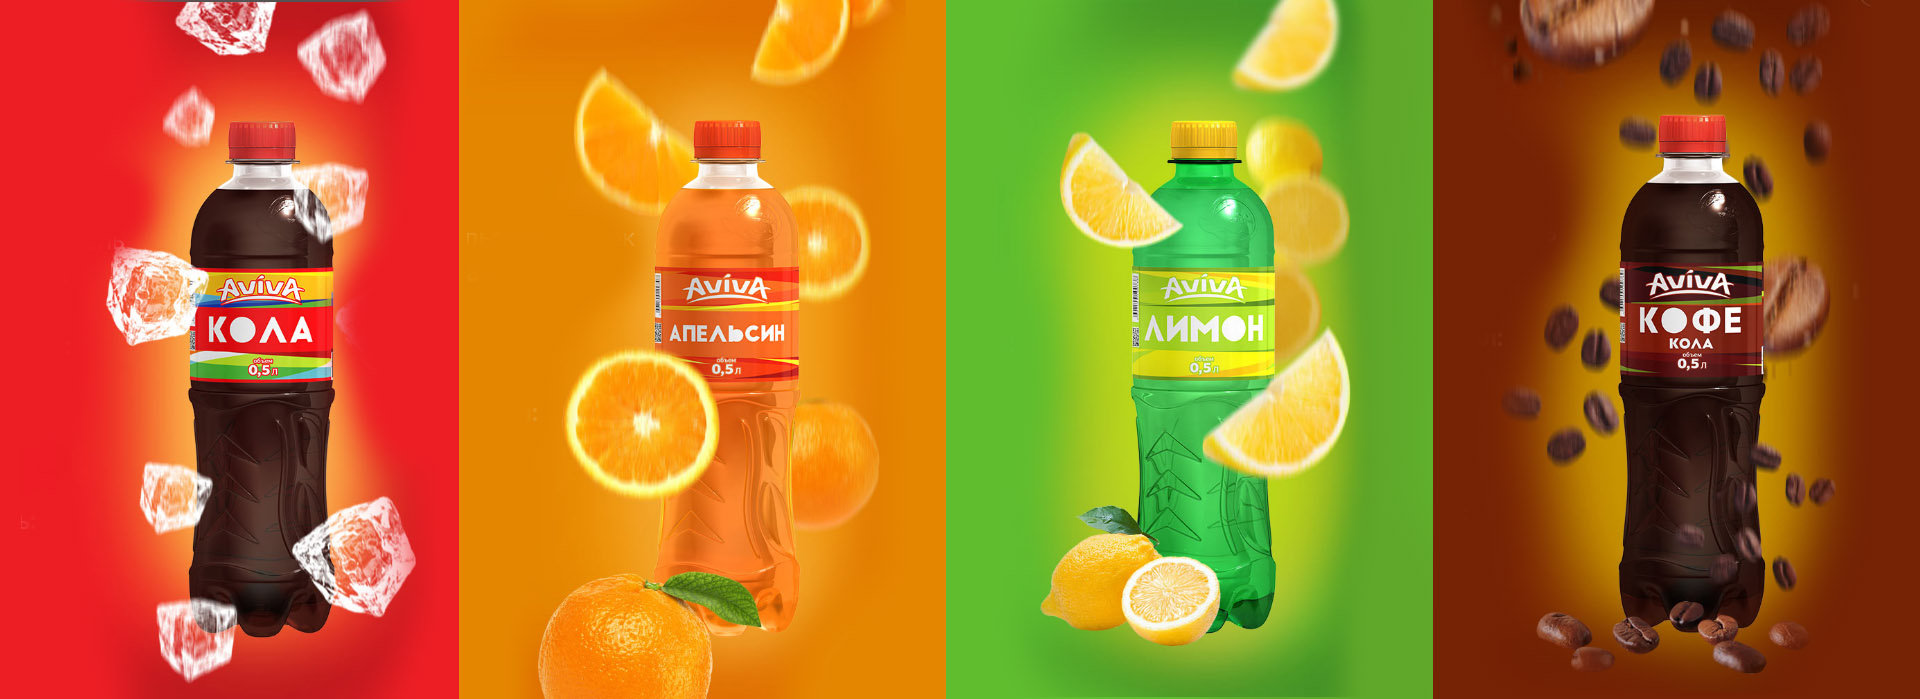 Soda label design, design этикетки лимонада